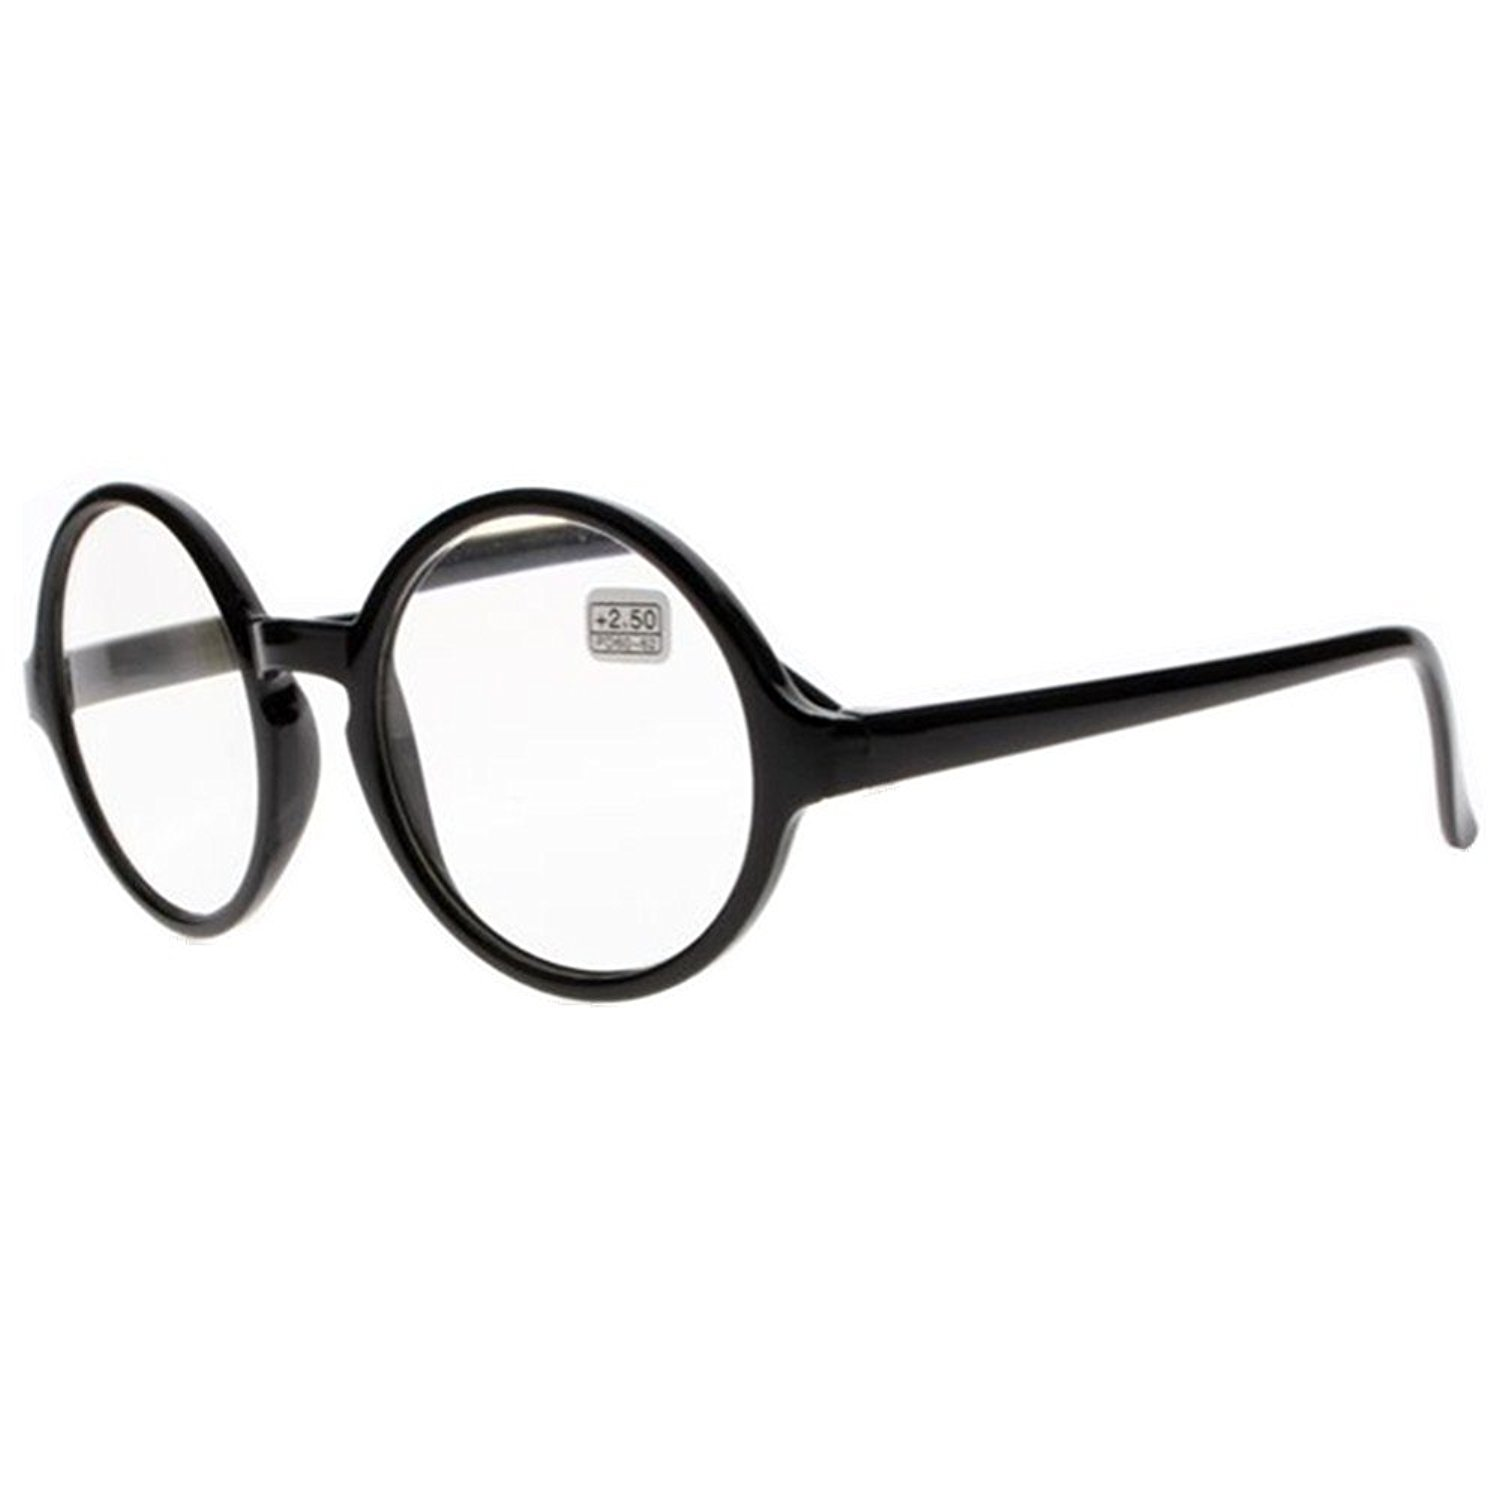 2ae6e32b38 Get Quotations · Men and Women Reading glasses Black Oversized Round  Readers Presbyopia